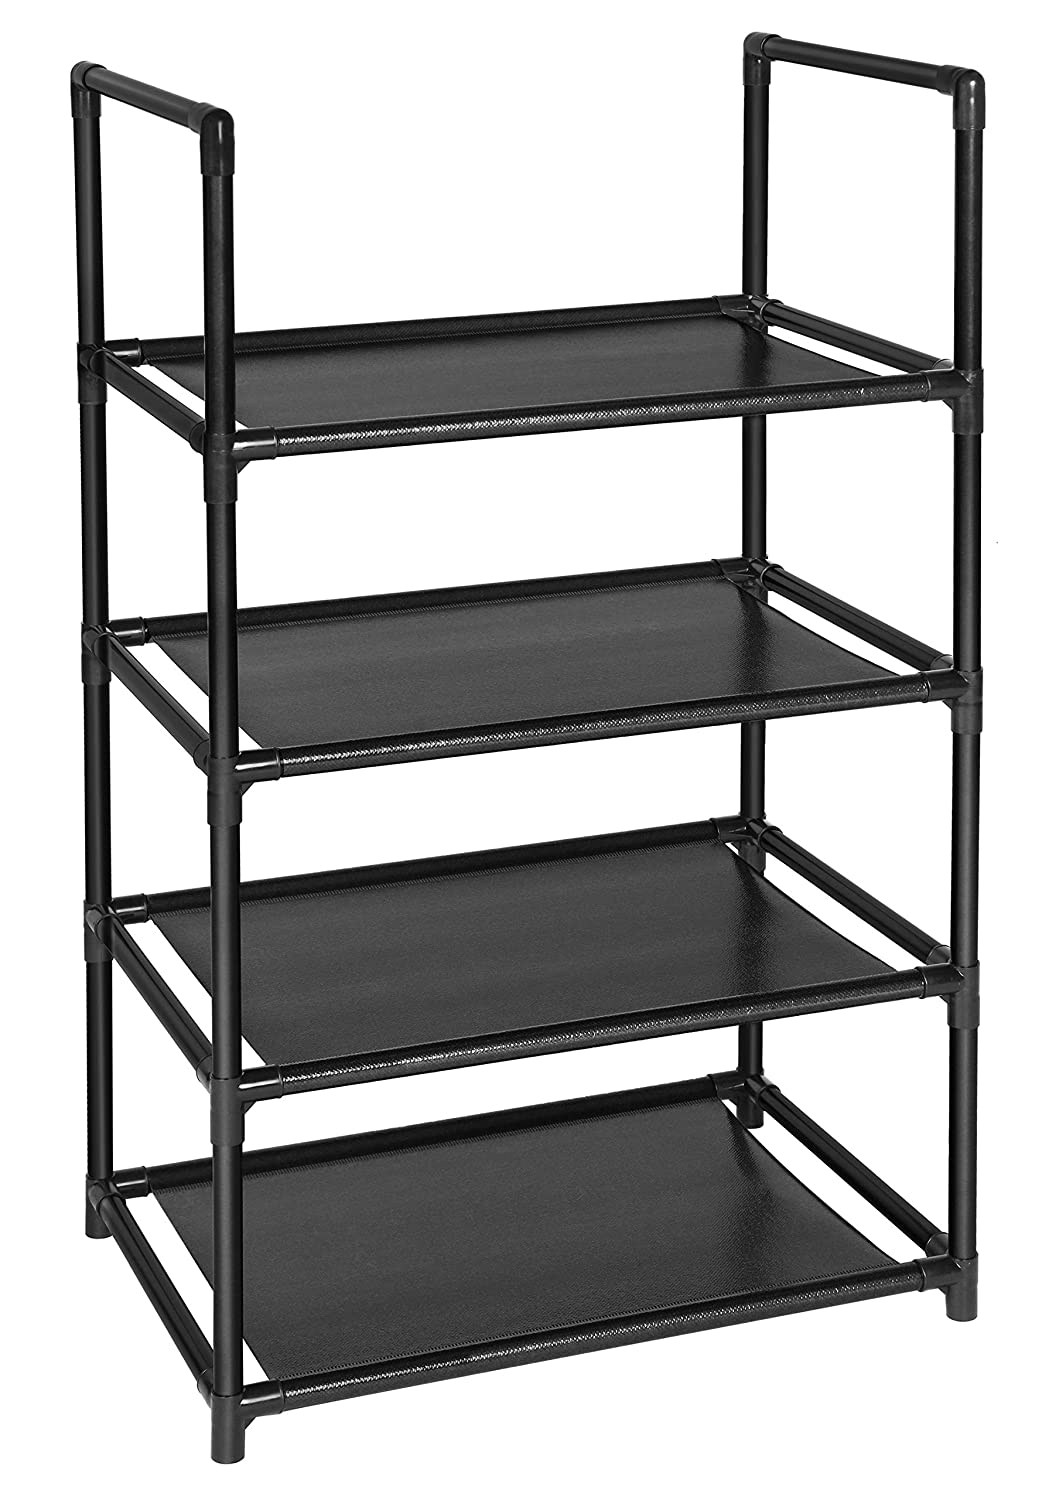 fiducial home 4 Tiers Shoe Rack 8-10 Pairs Sturdy Shoe Shelf